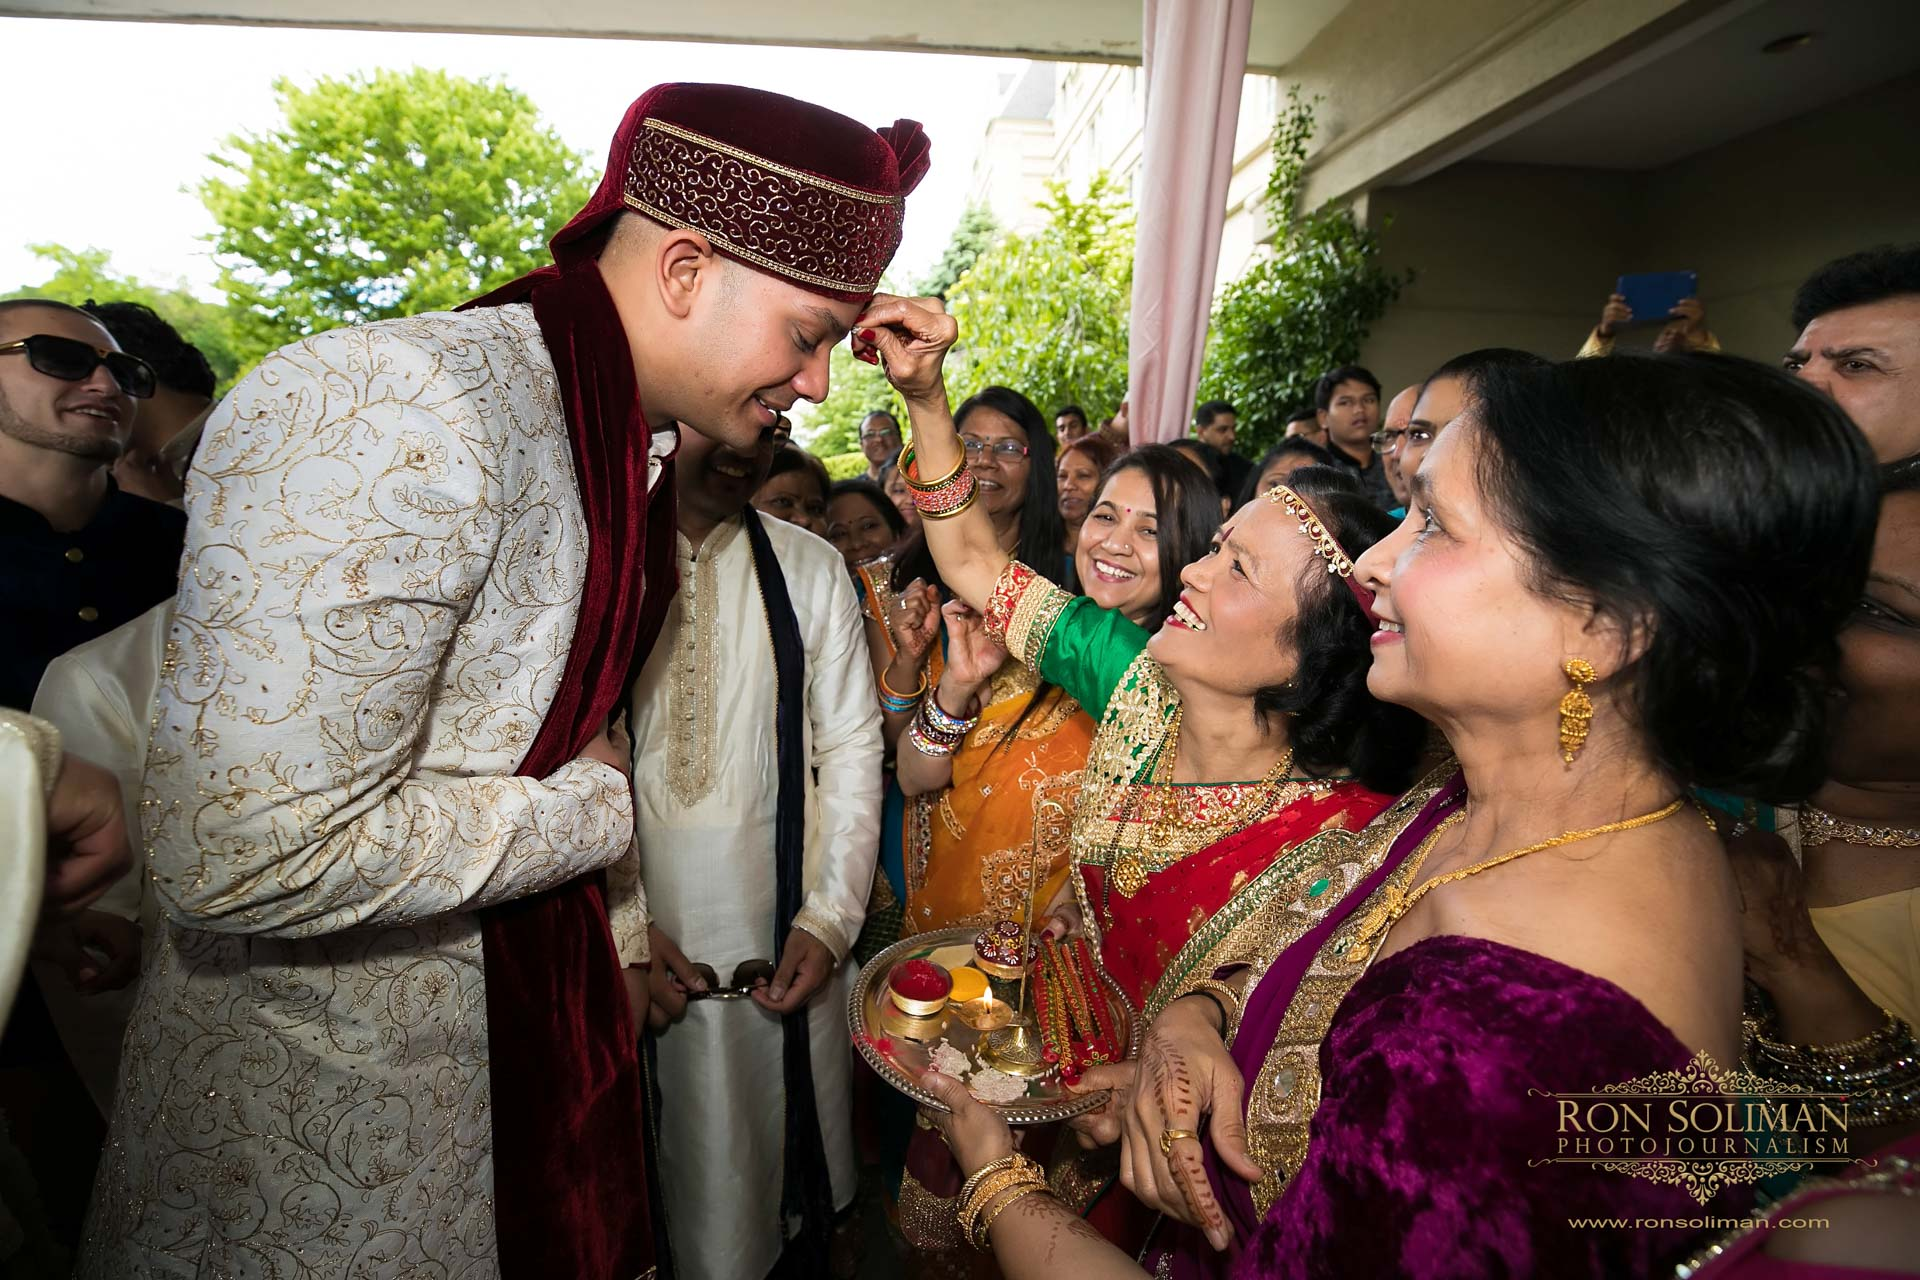 HILTON PEARL RIVER INDIAN WEDDING 35